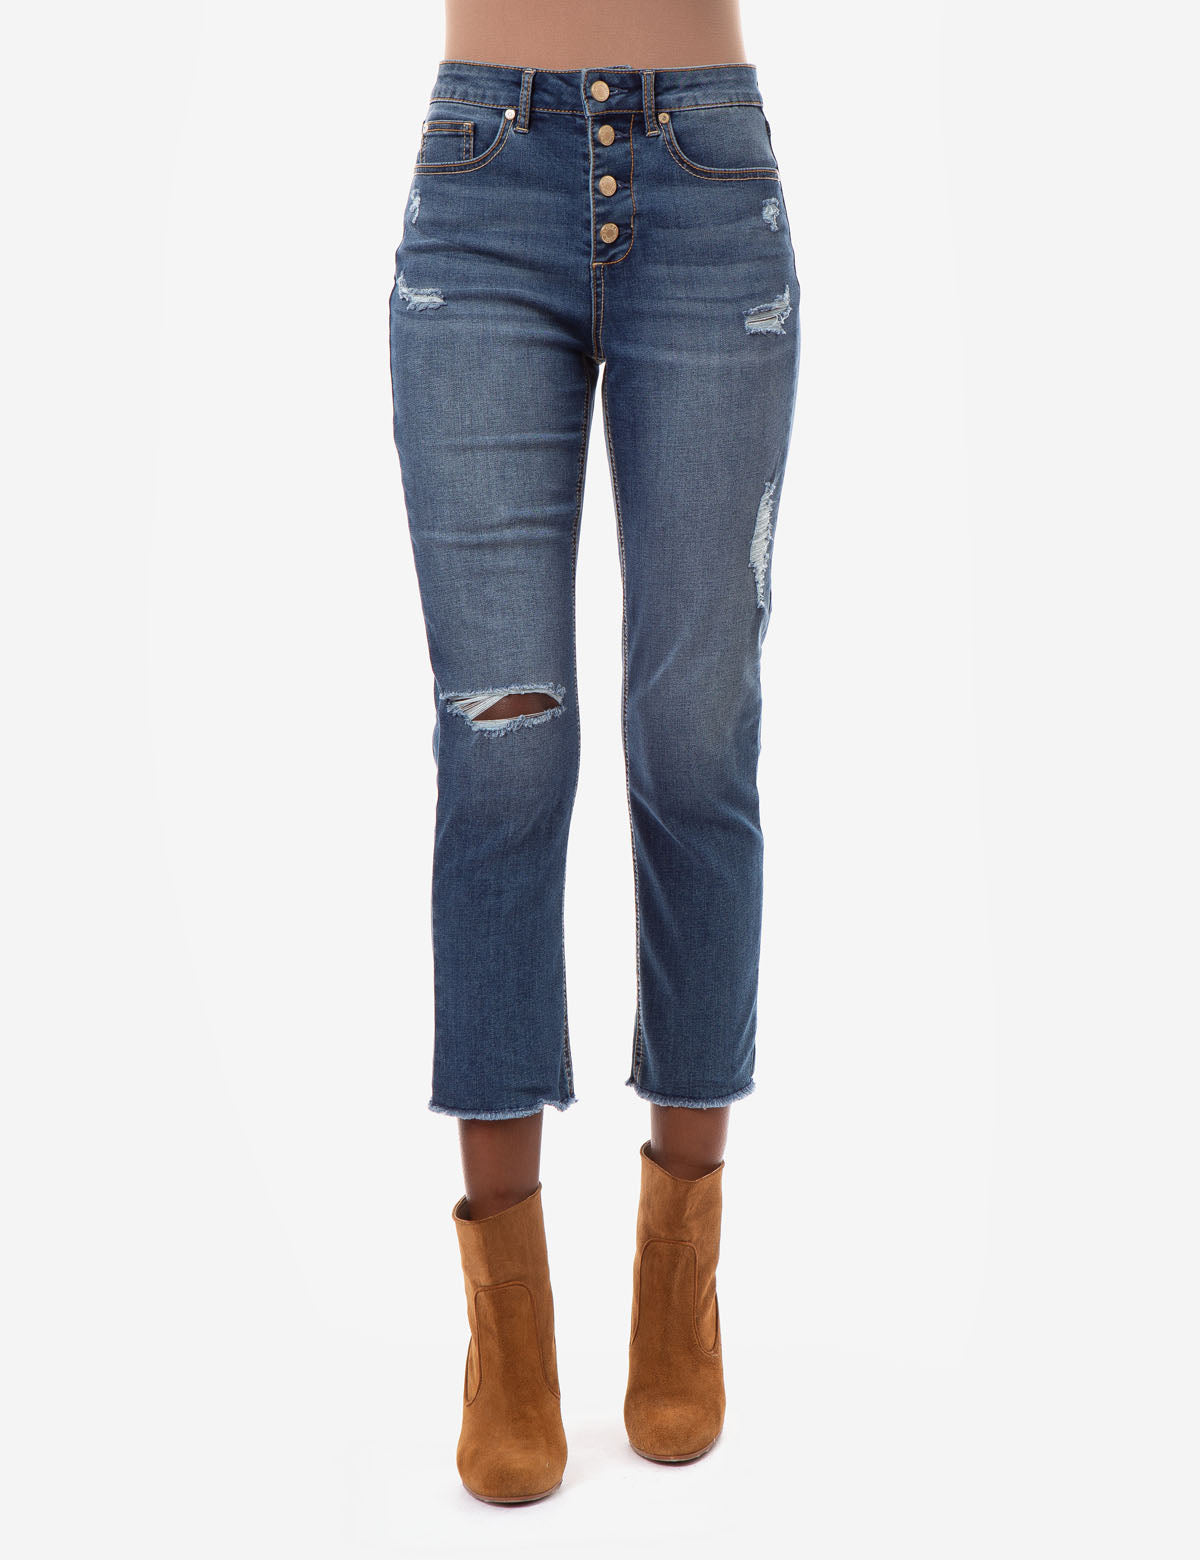 REPREVE® HIGH RISE STRAIGHT CROP JEANS - U.S. Polo Assn.